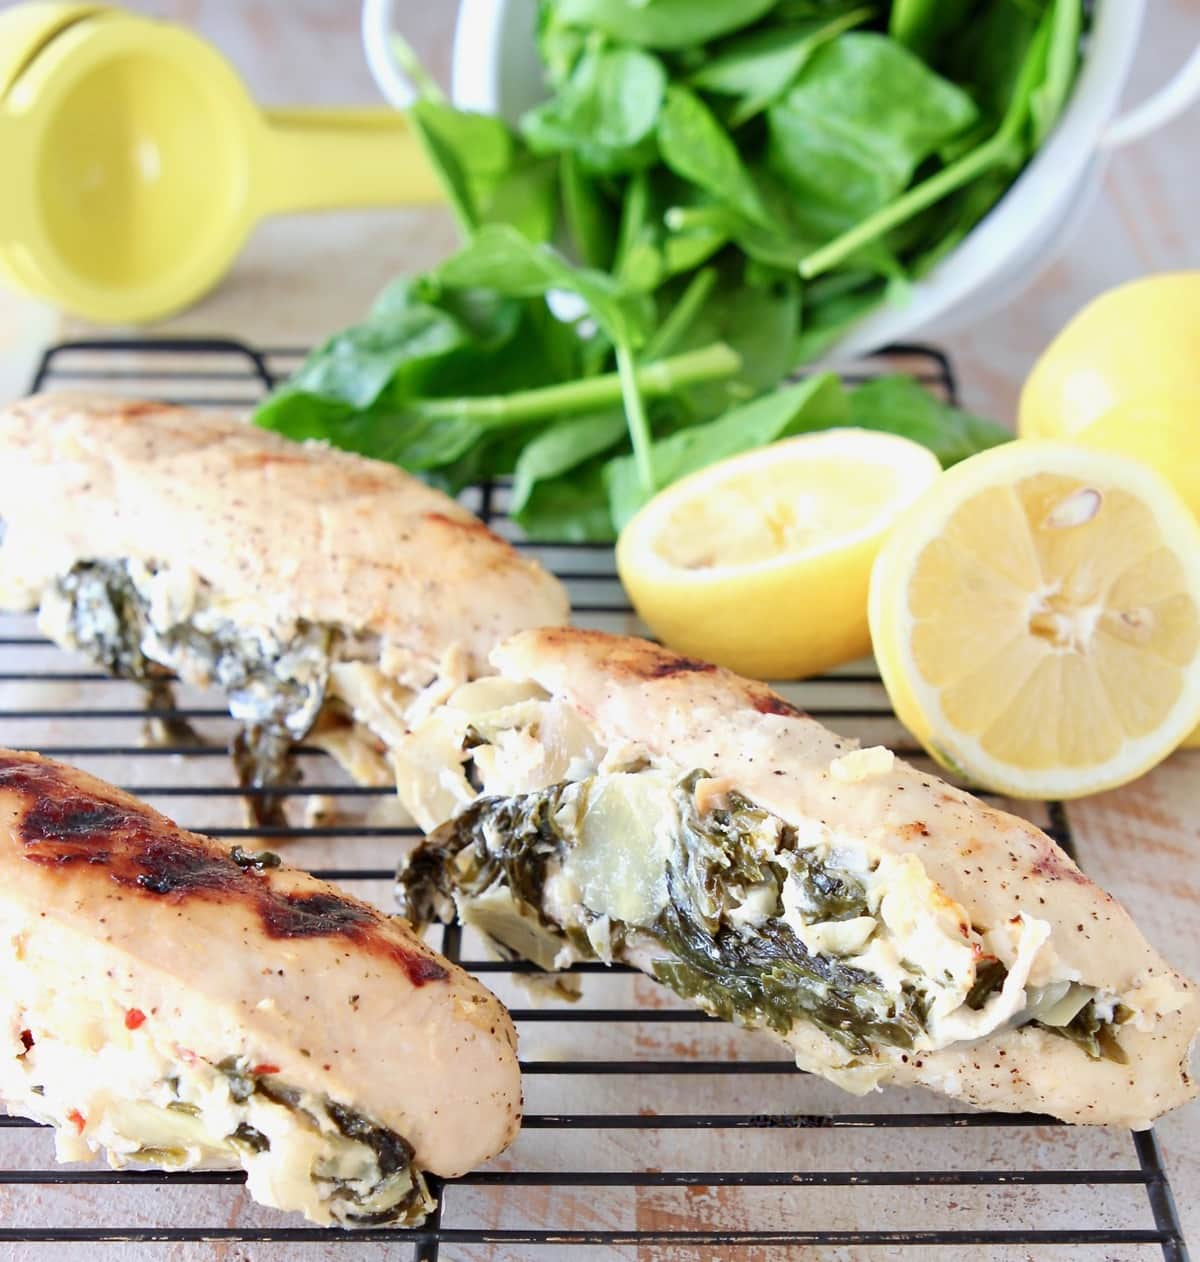 Stuffed Spinach Artichoke Chicken with Lemons and Fresh Spinach